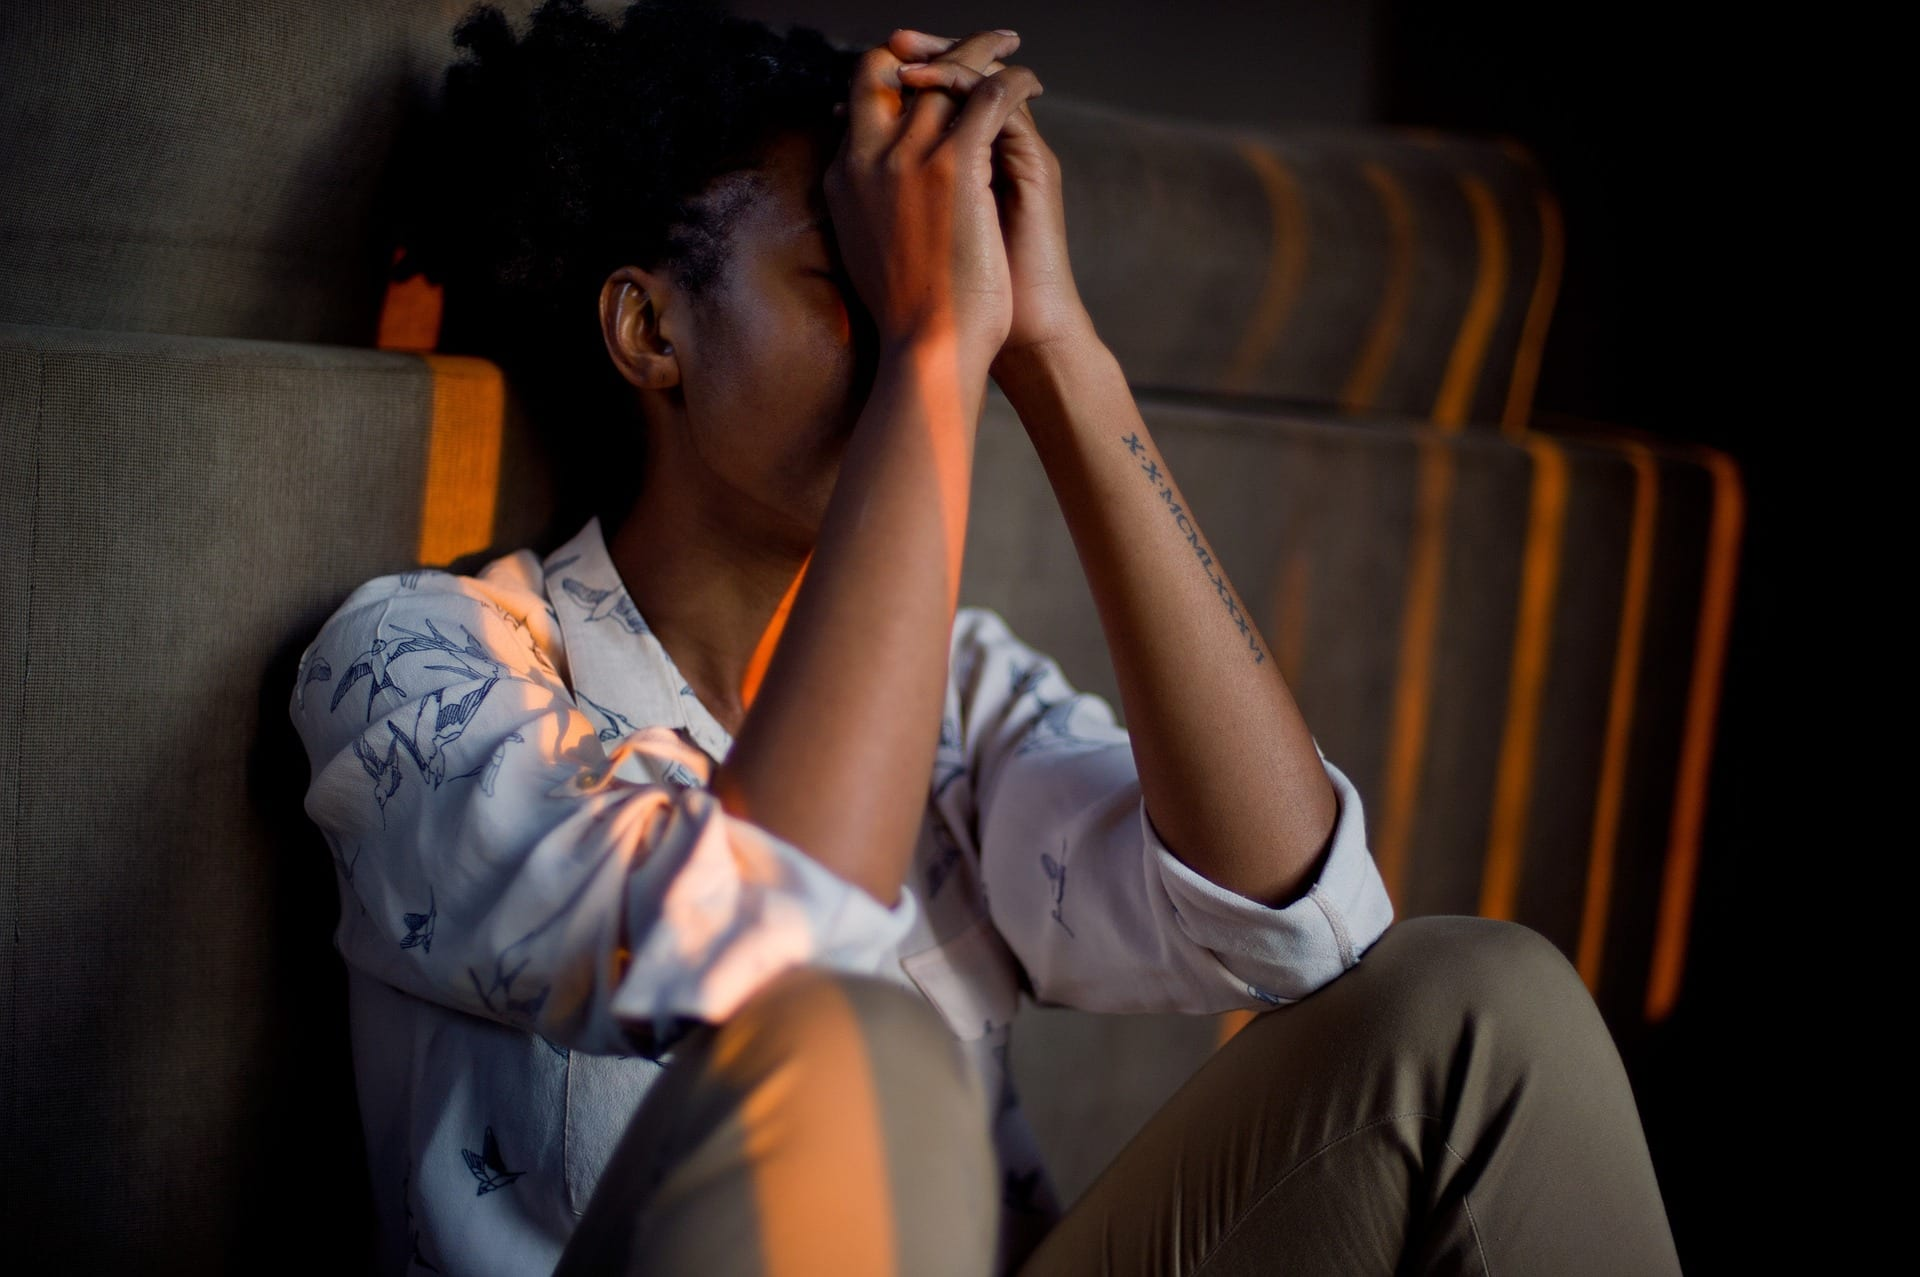 A young, dark-skinned person sitting and hiding their face, stressed.